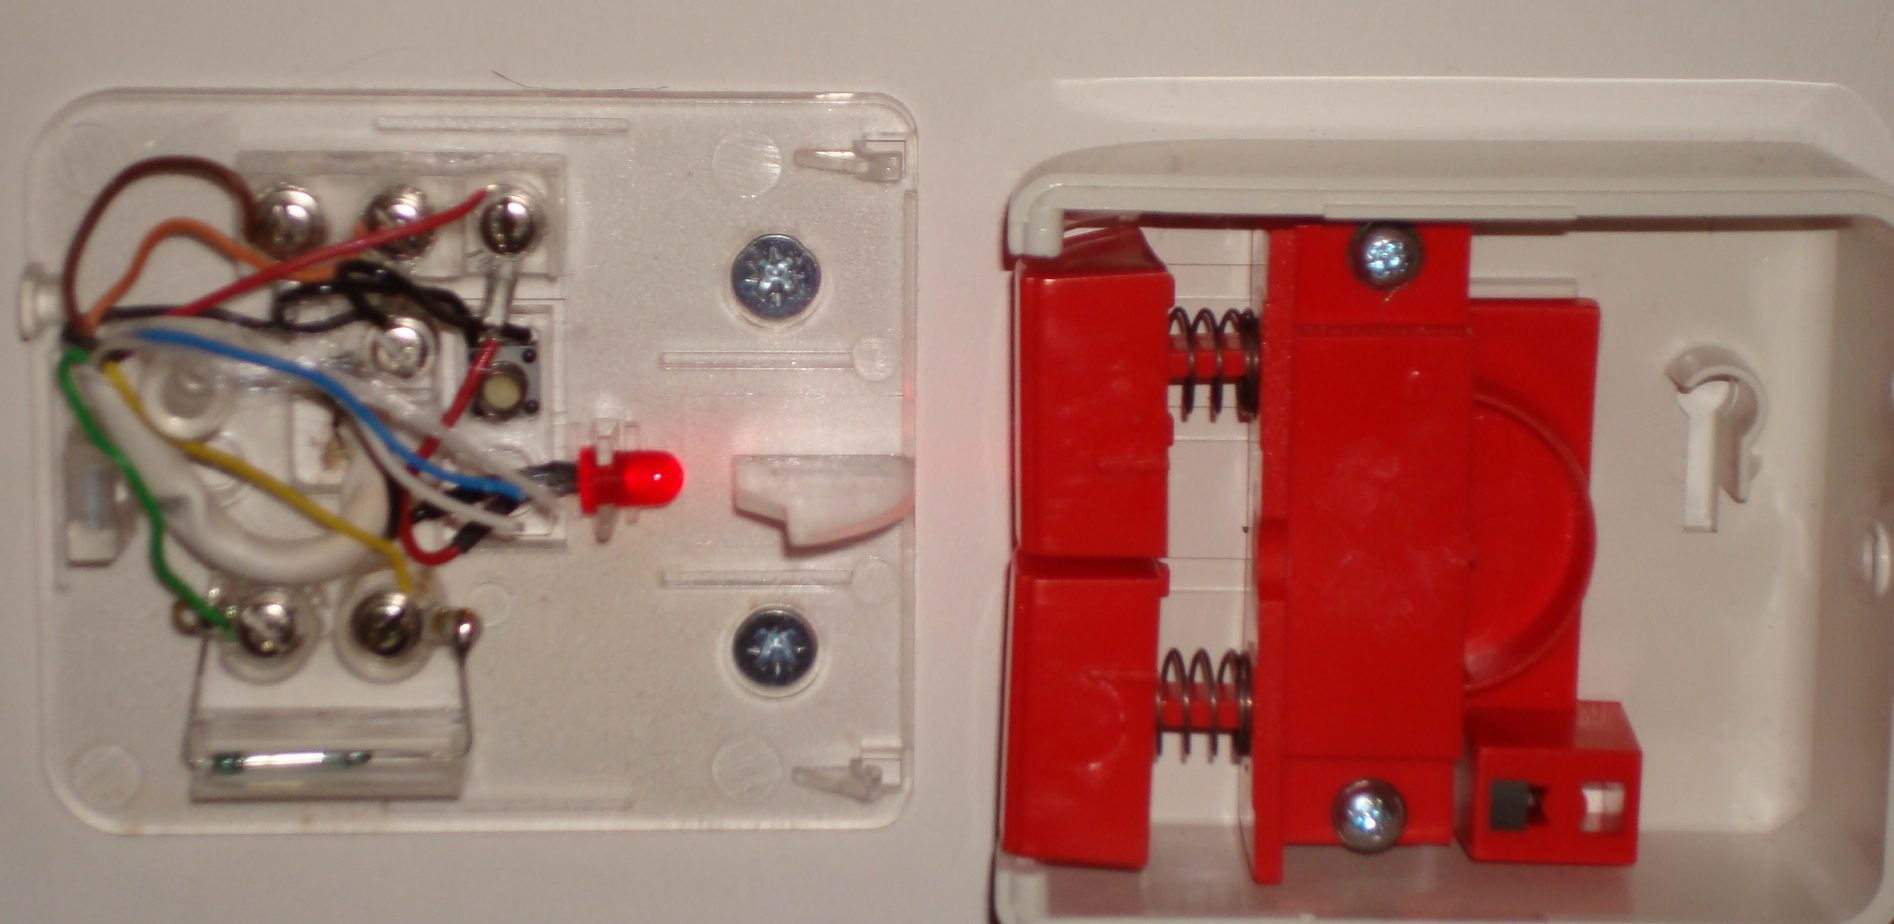 panic alarm wiring with pictures members lounge public rh thesecurityinstaller co uk  burglar alarm panic button wiring